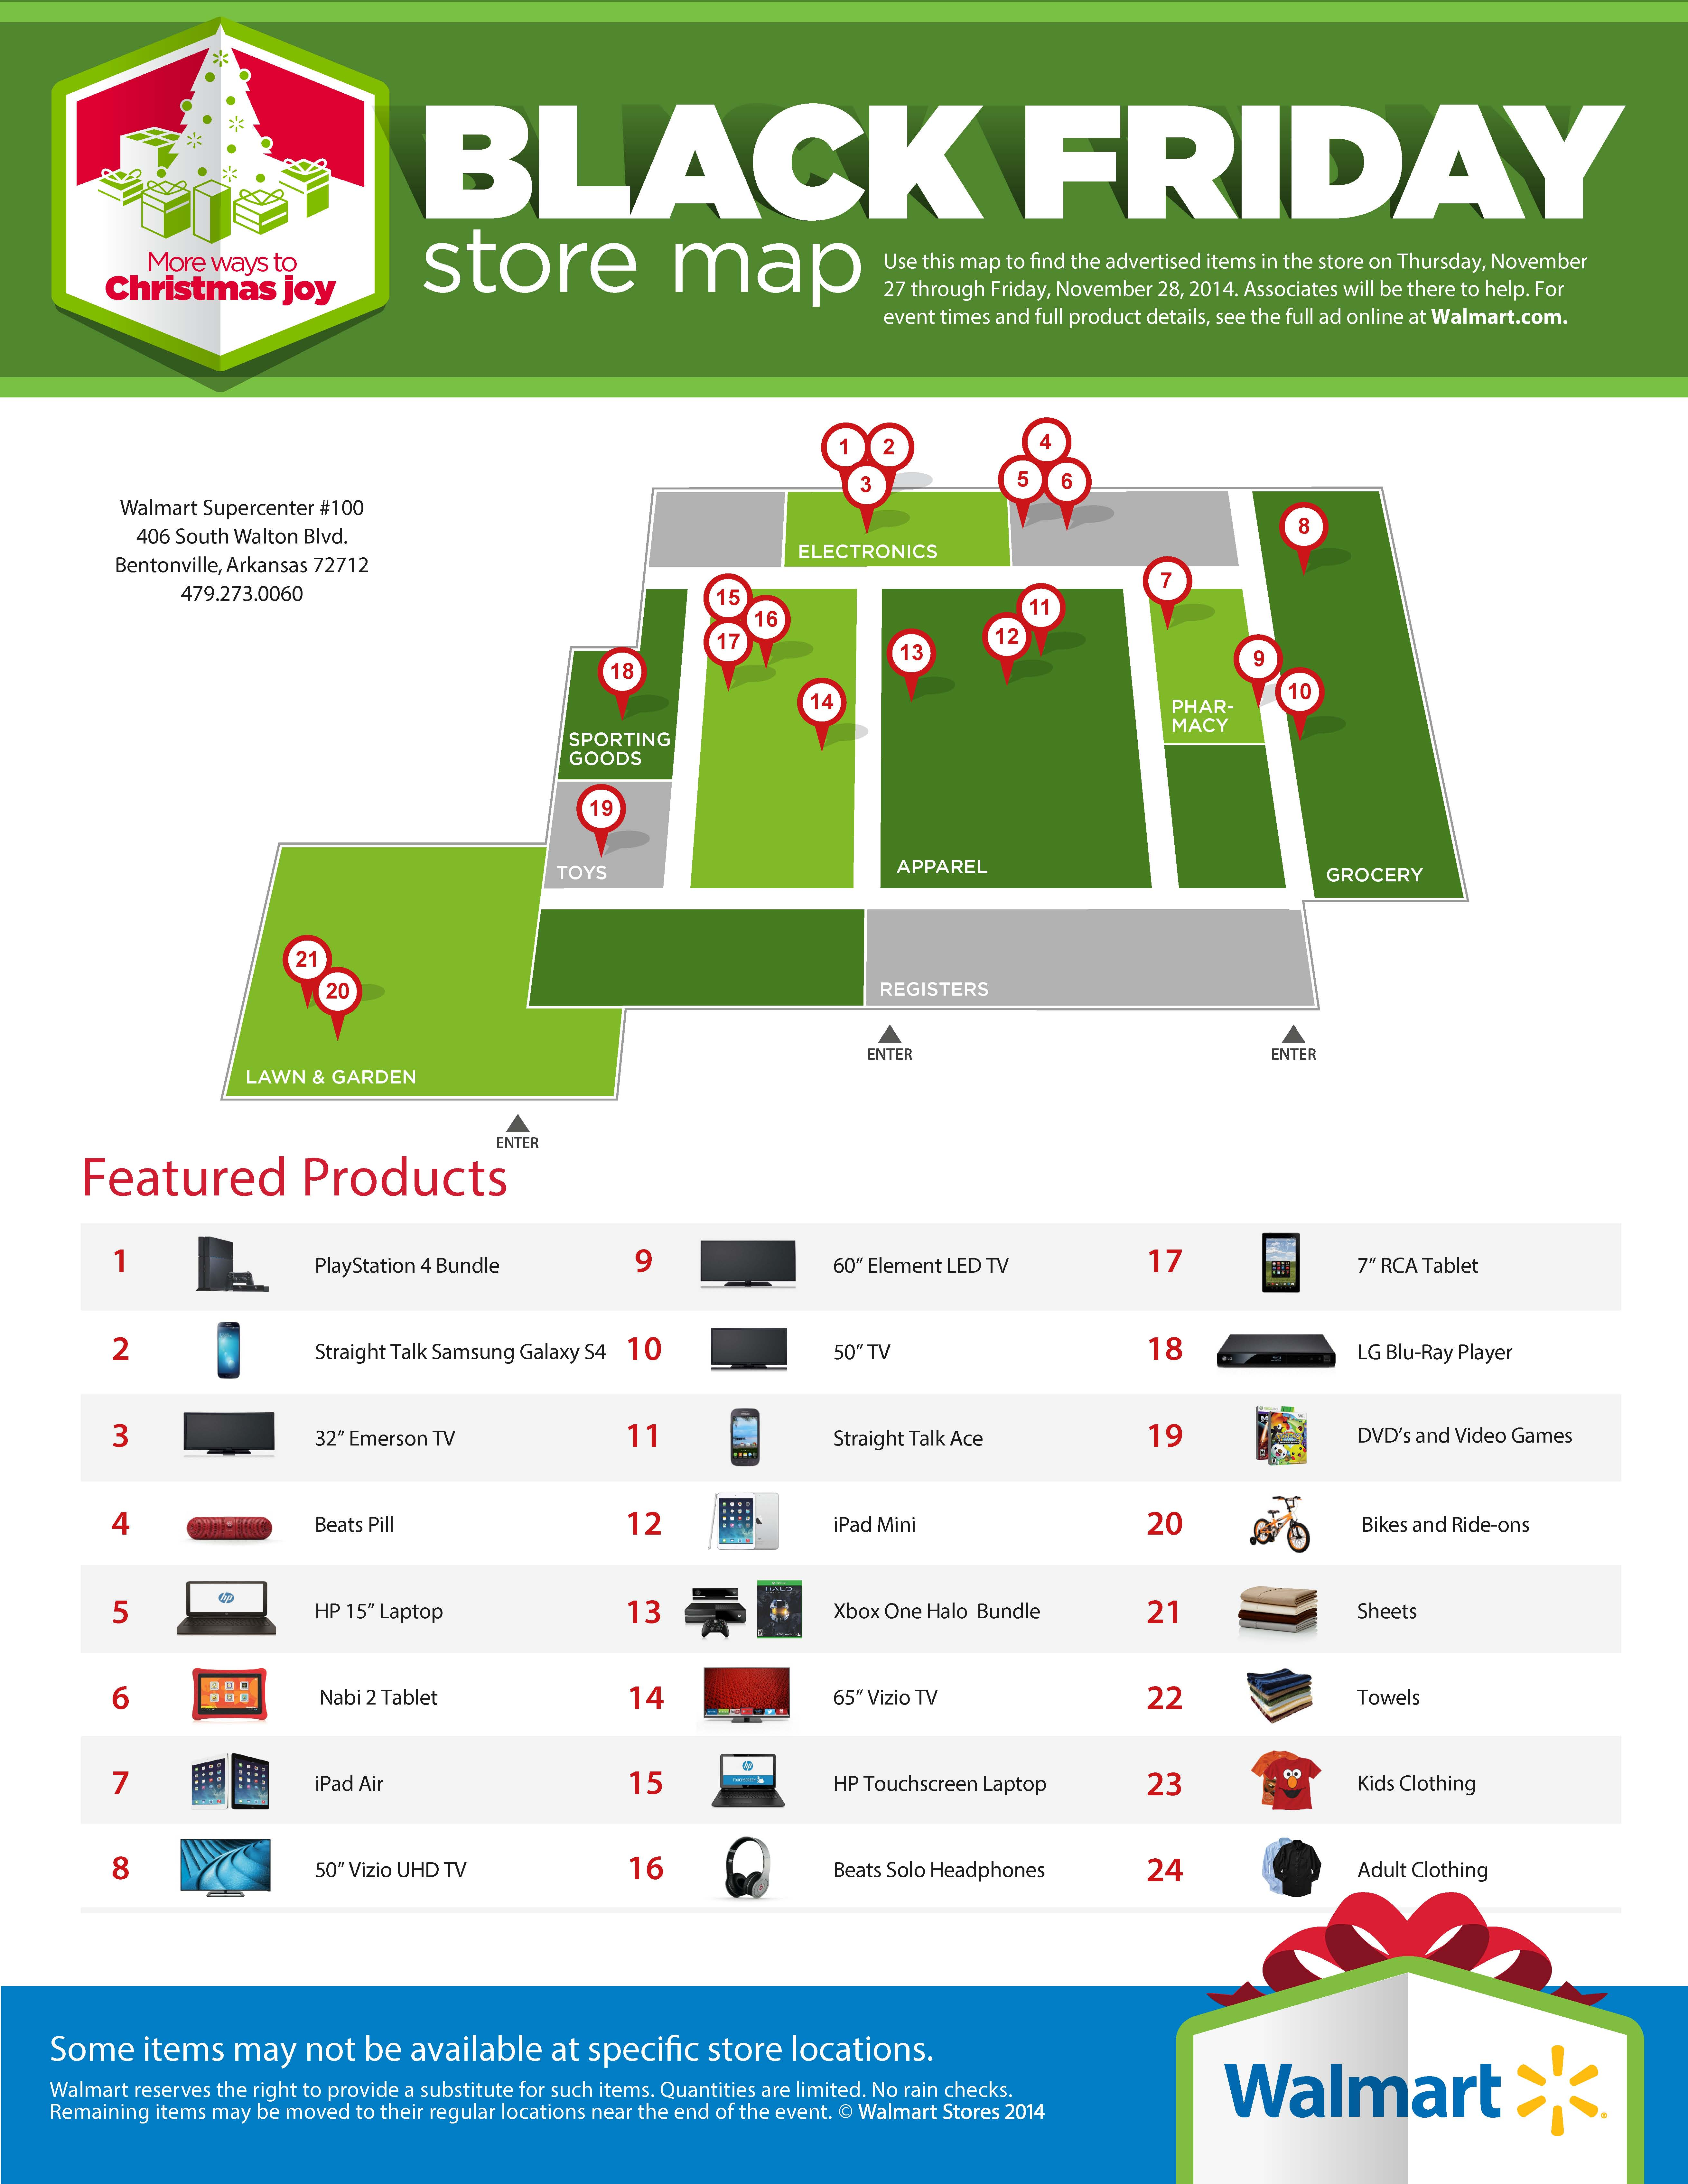 black-friday-store-map-example.jpg